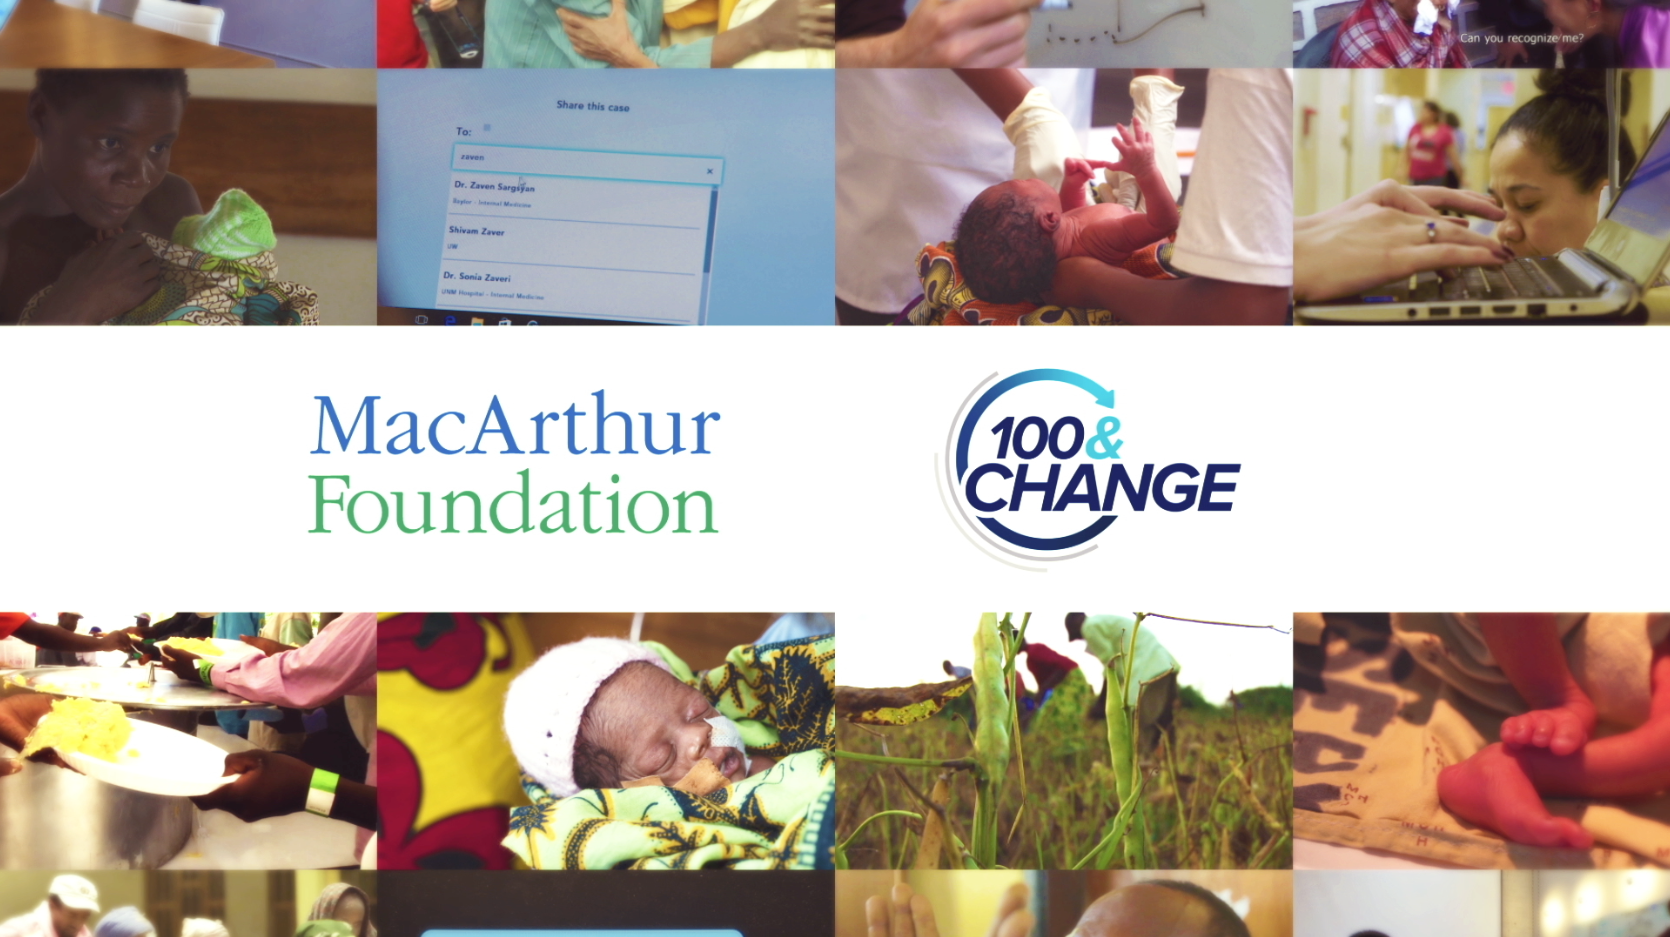 100&Change and MacArthur Foundation logos in the center of a collage showcasing MacArthur Foundation's work.